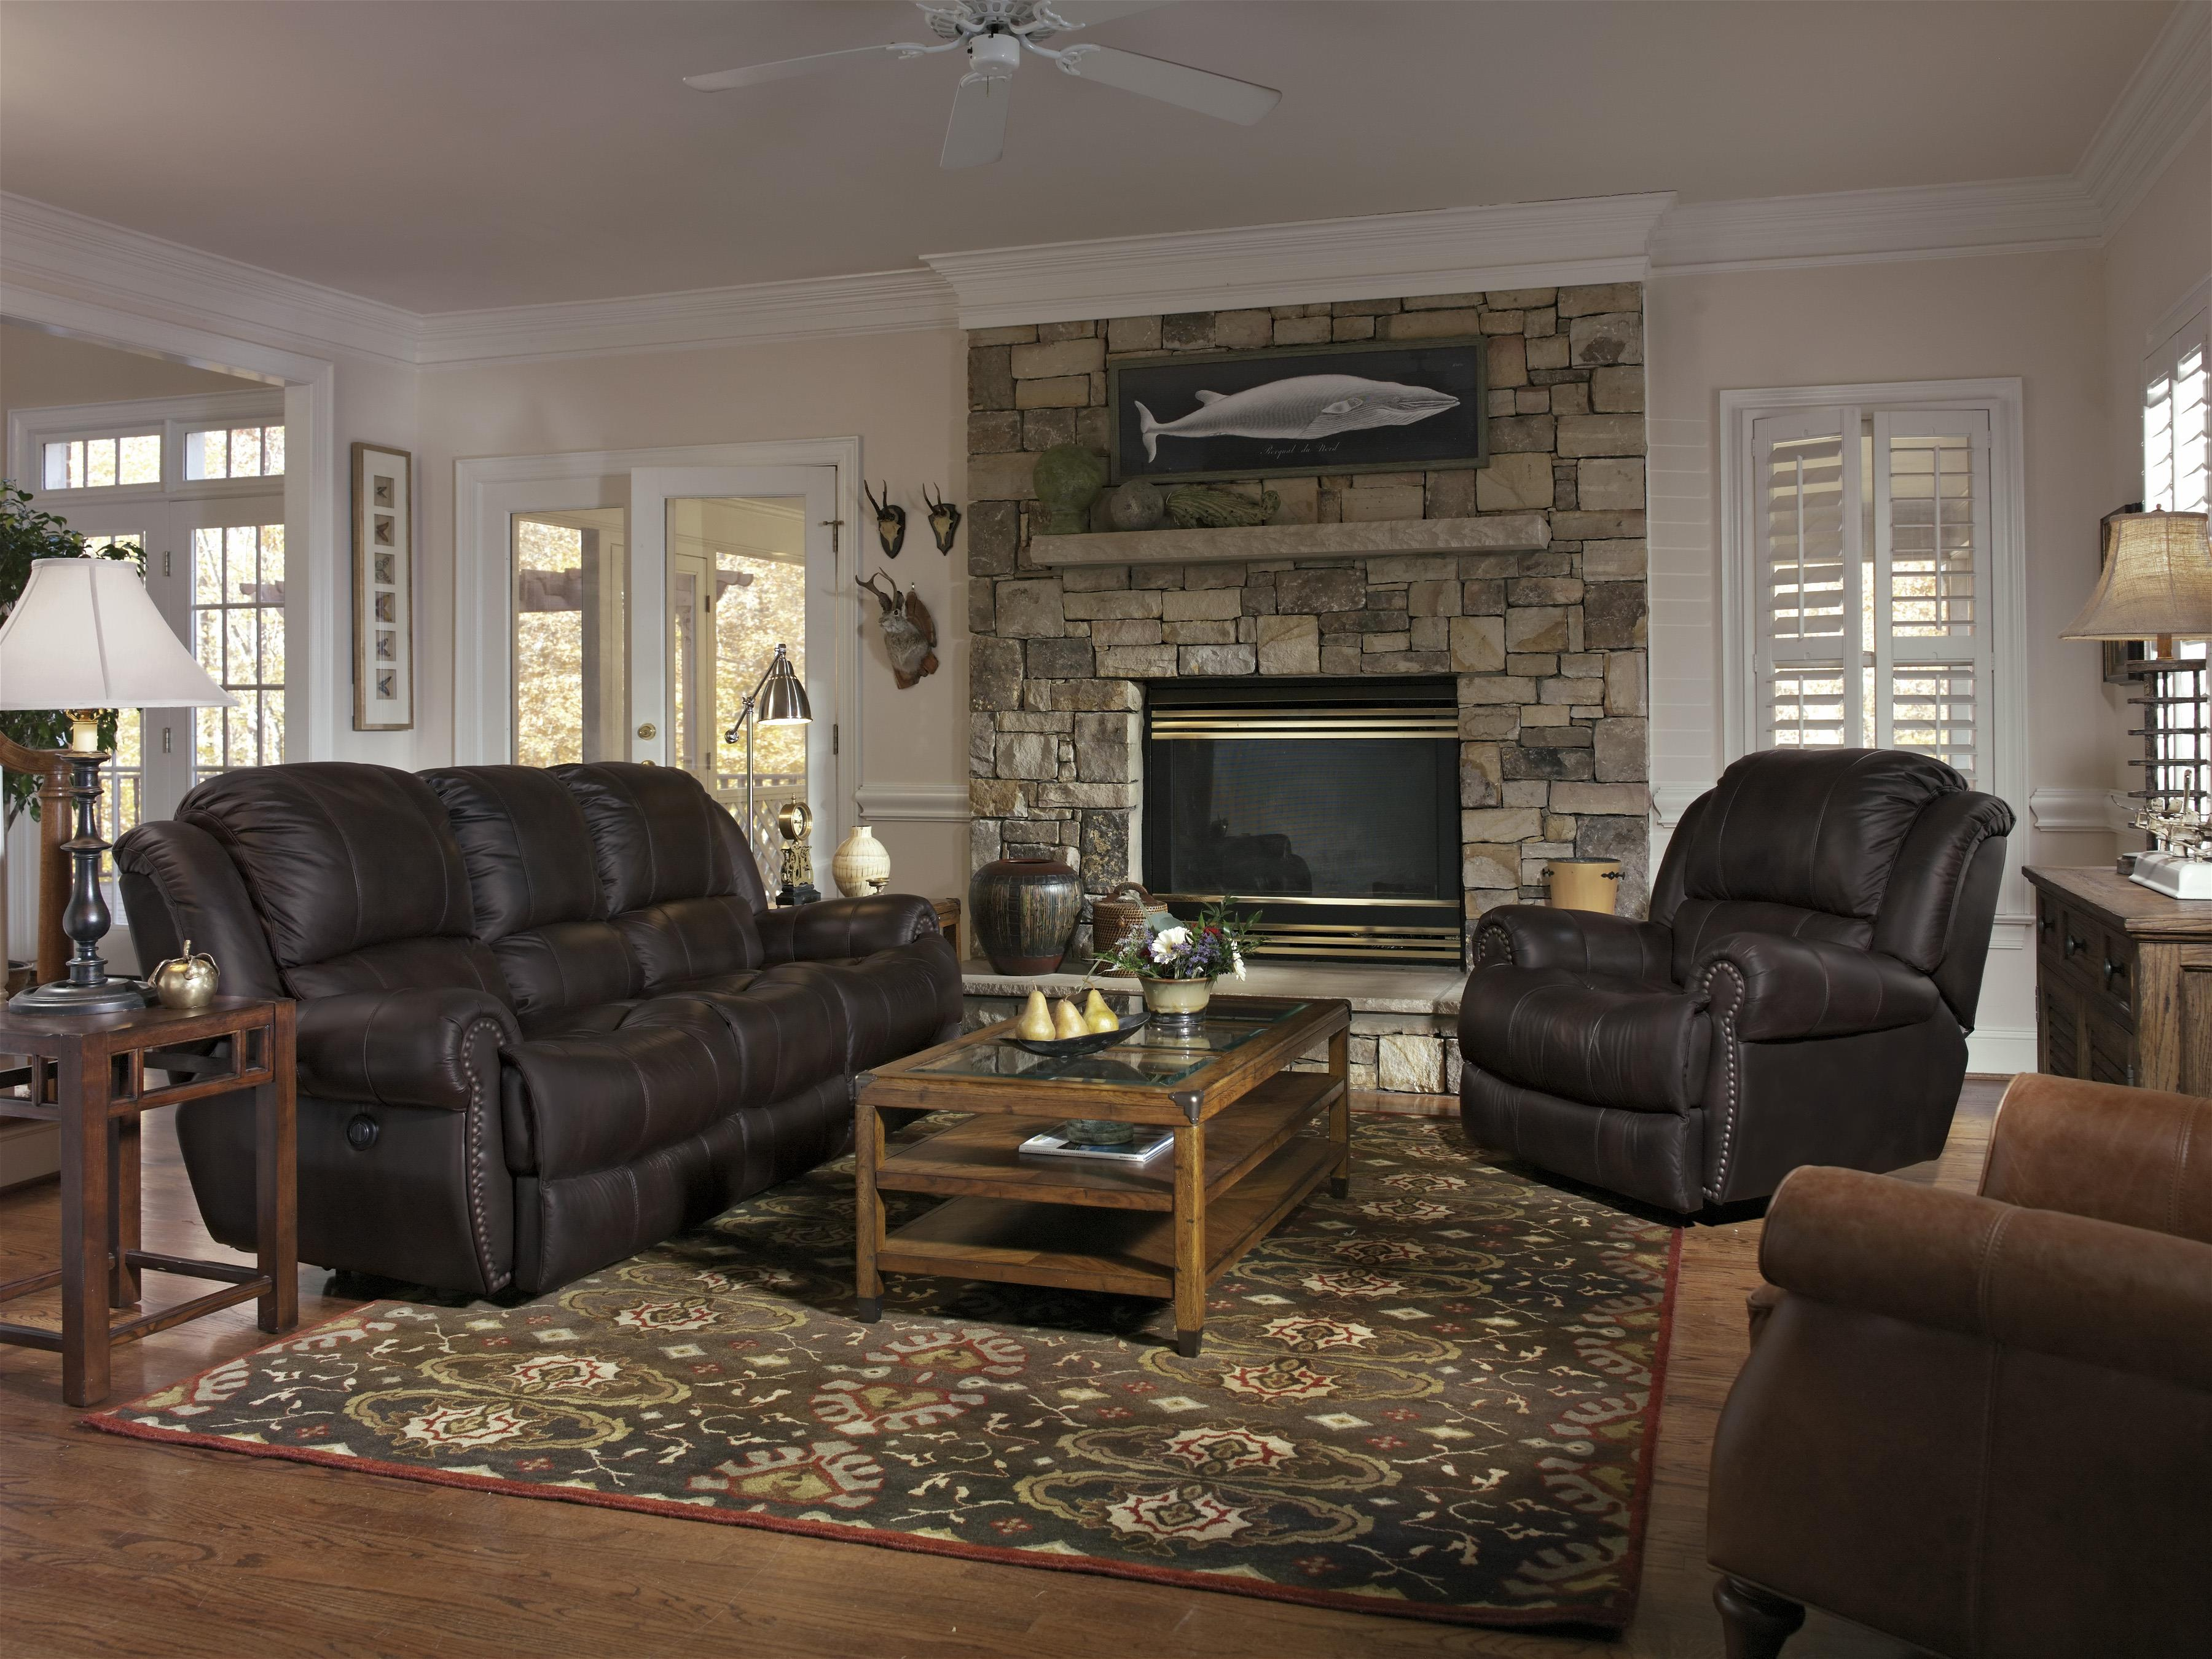 Flexsteel Latitudes - Capitol Reclining Living Room Group - Item Number: 1311 Living Room Group 1